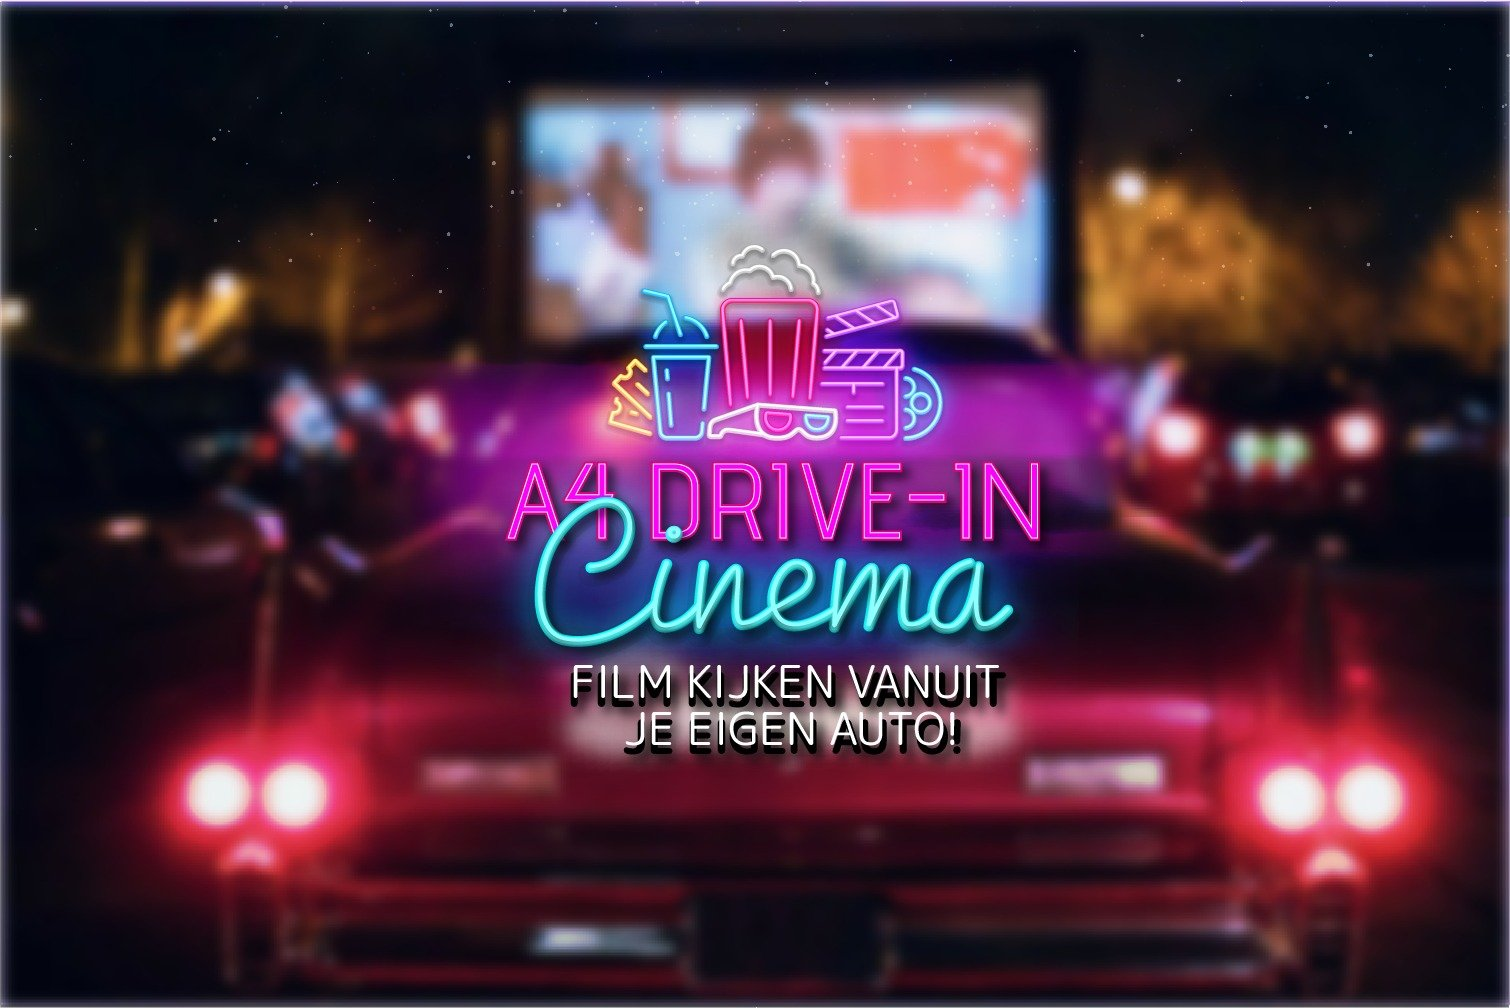 Drive-in bioscoop: Back to the future